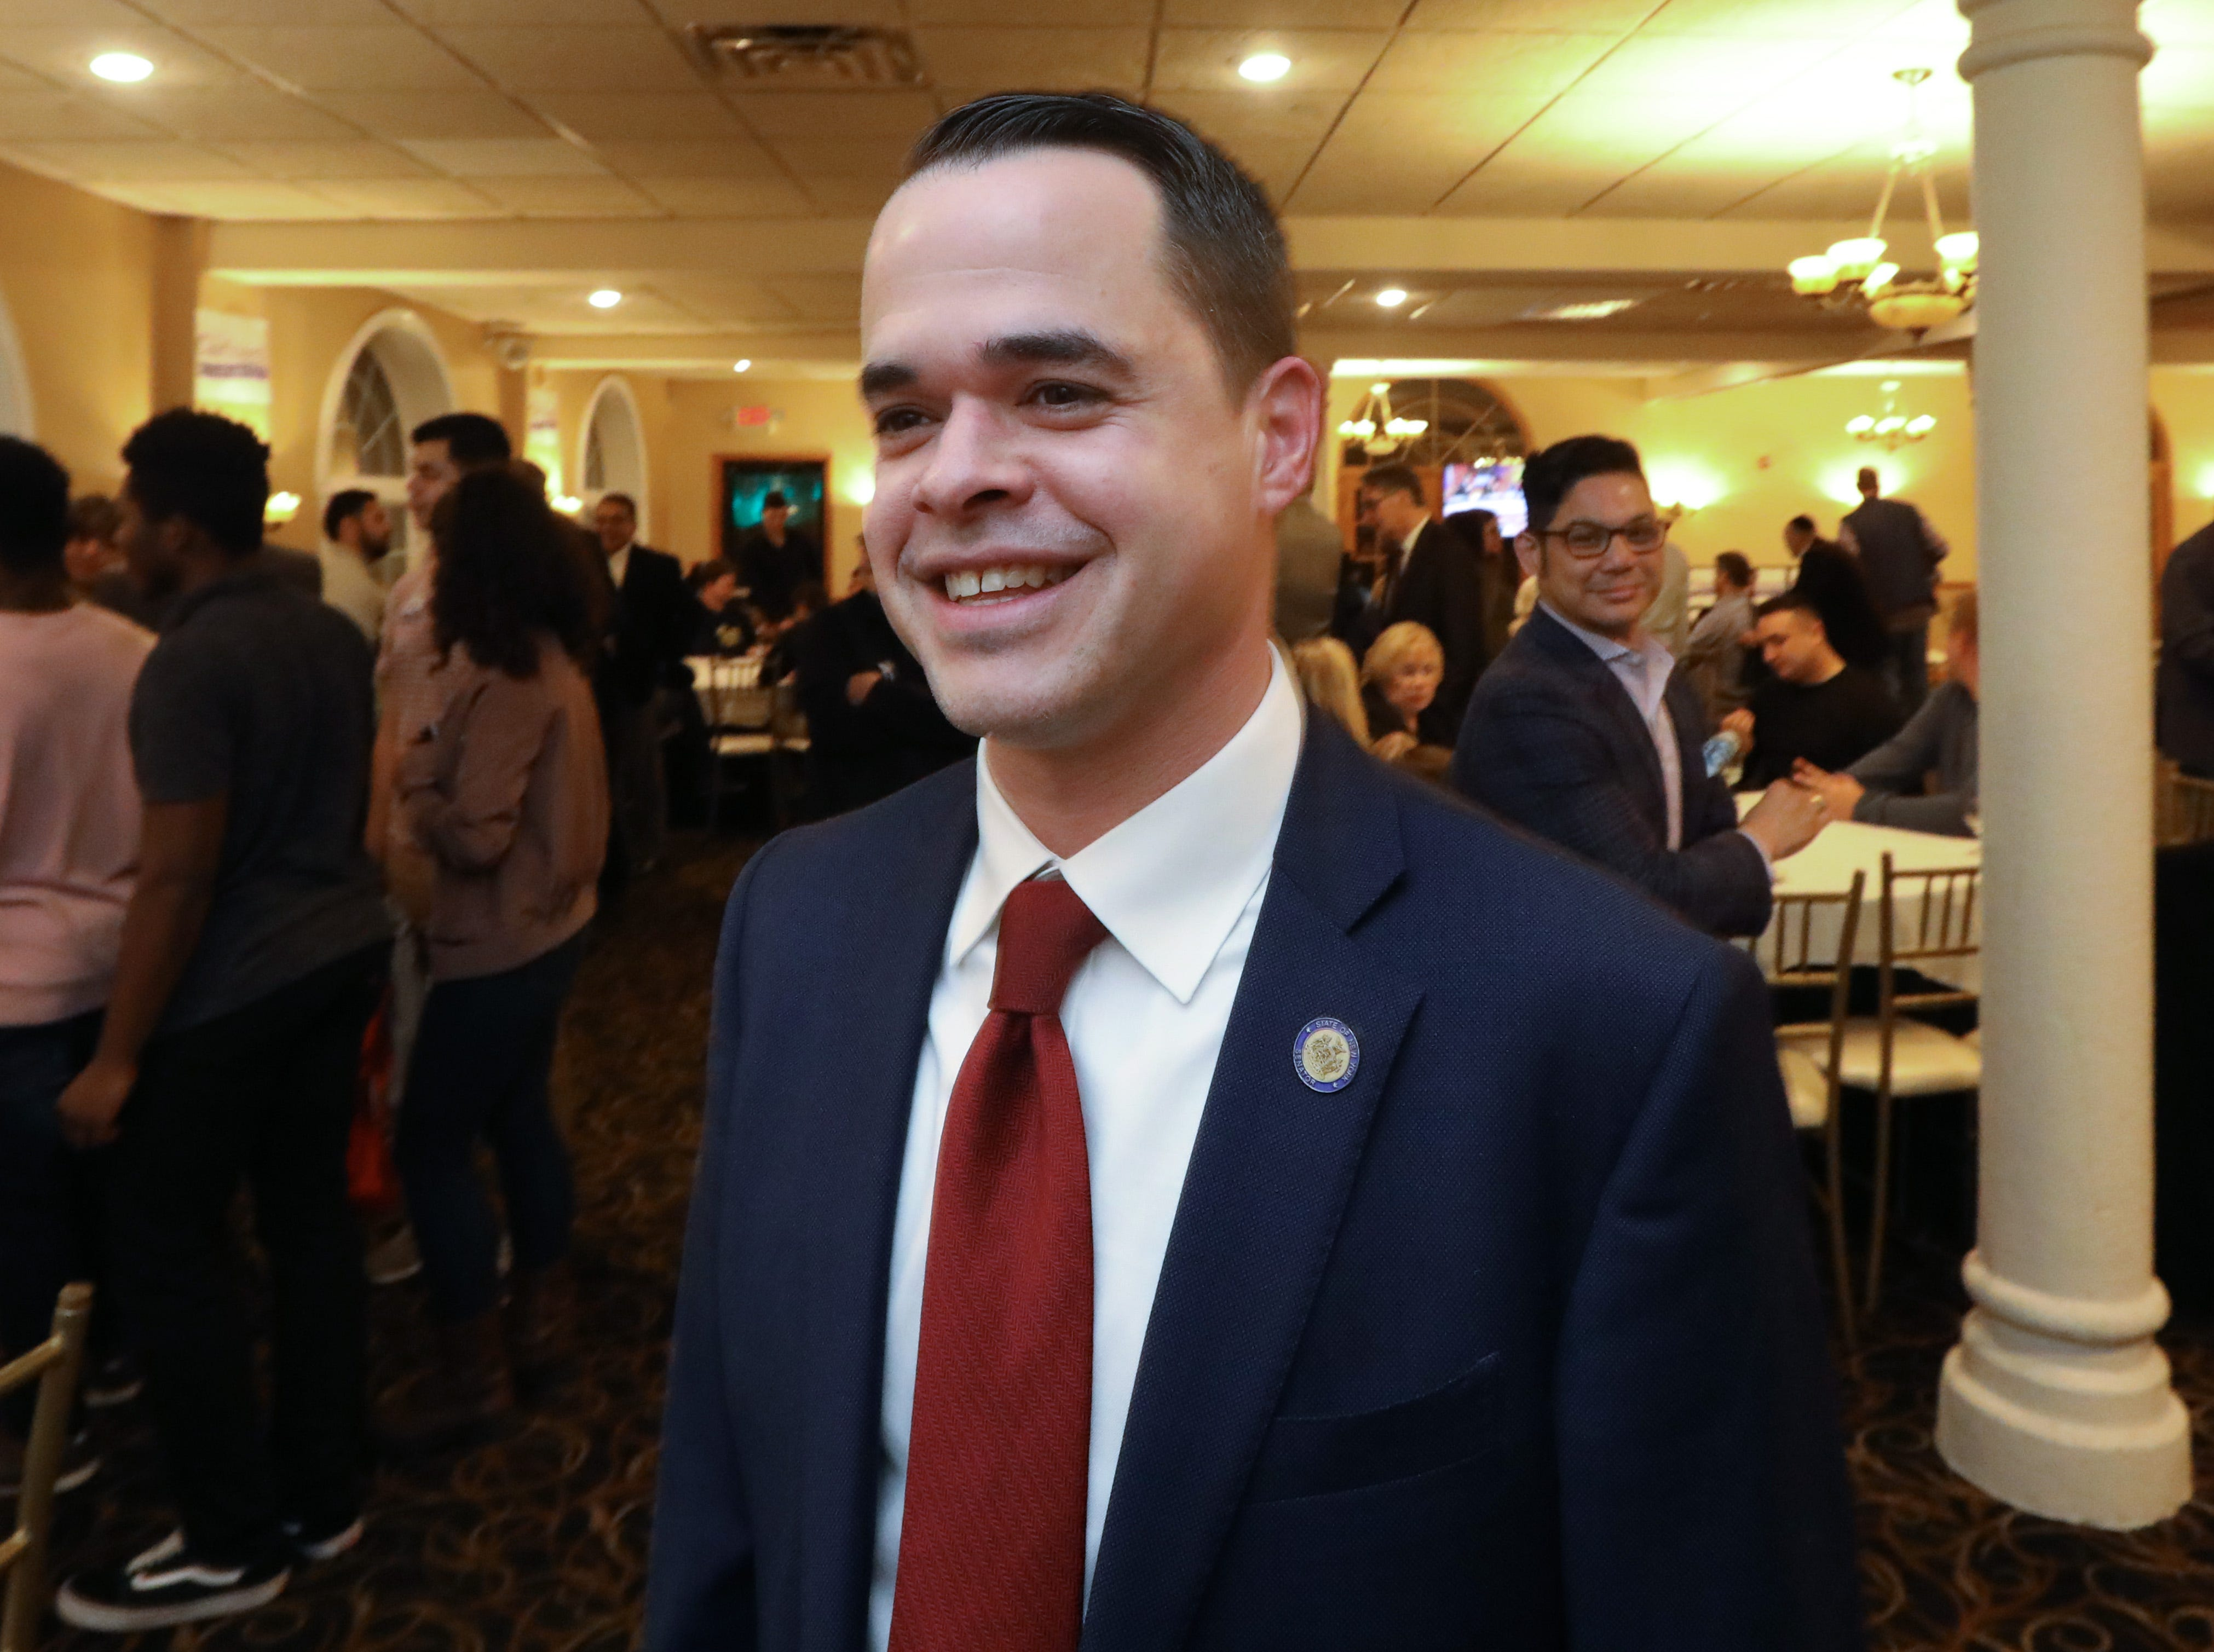 State Senator David Carlucci waits for election results at Casa Mia in Blauvelt Nov. 6, 2018.